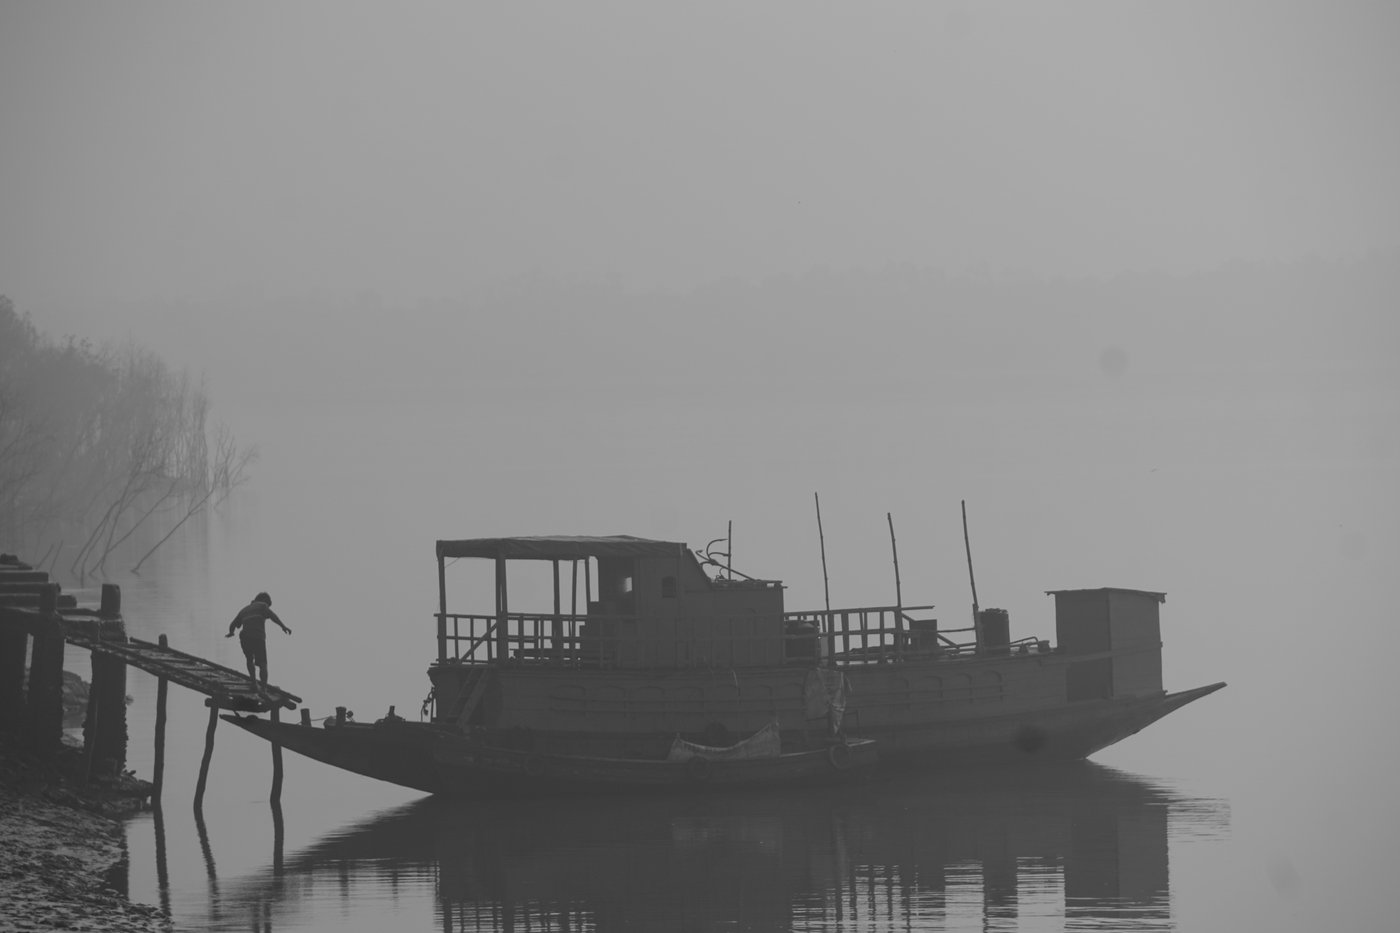 Man getting on ferry on a foggy day